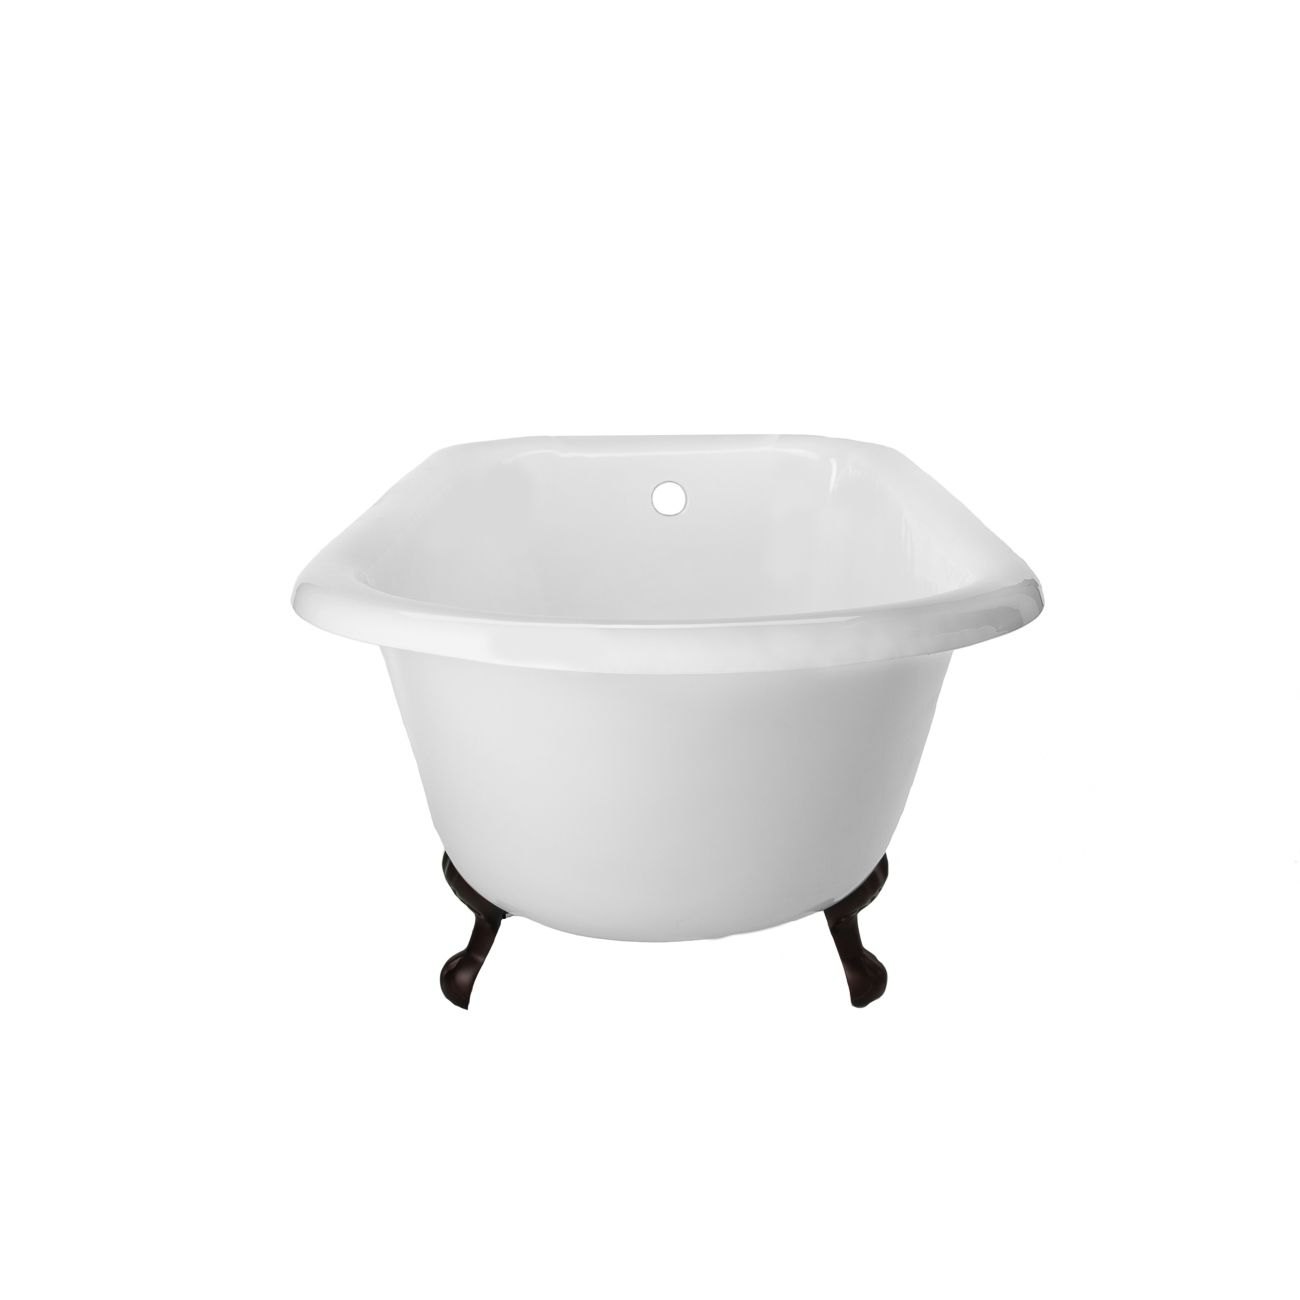 Heritage 67 inch cast iron classic clawfoot tub - no faucet drillings